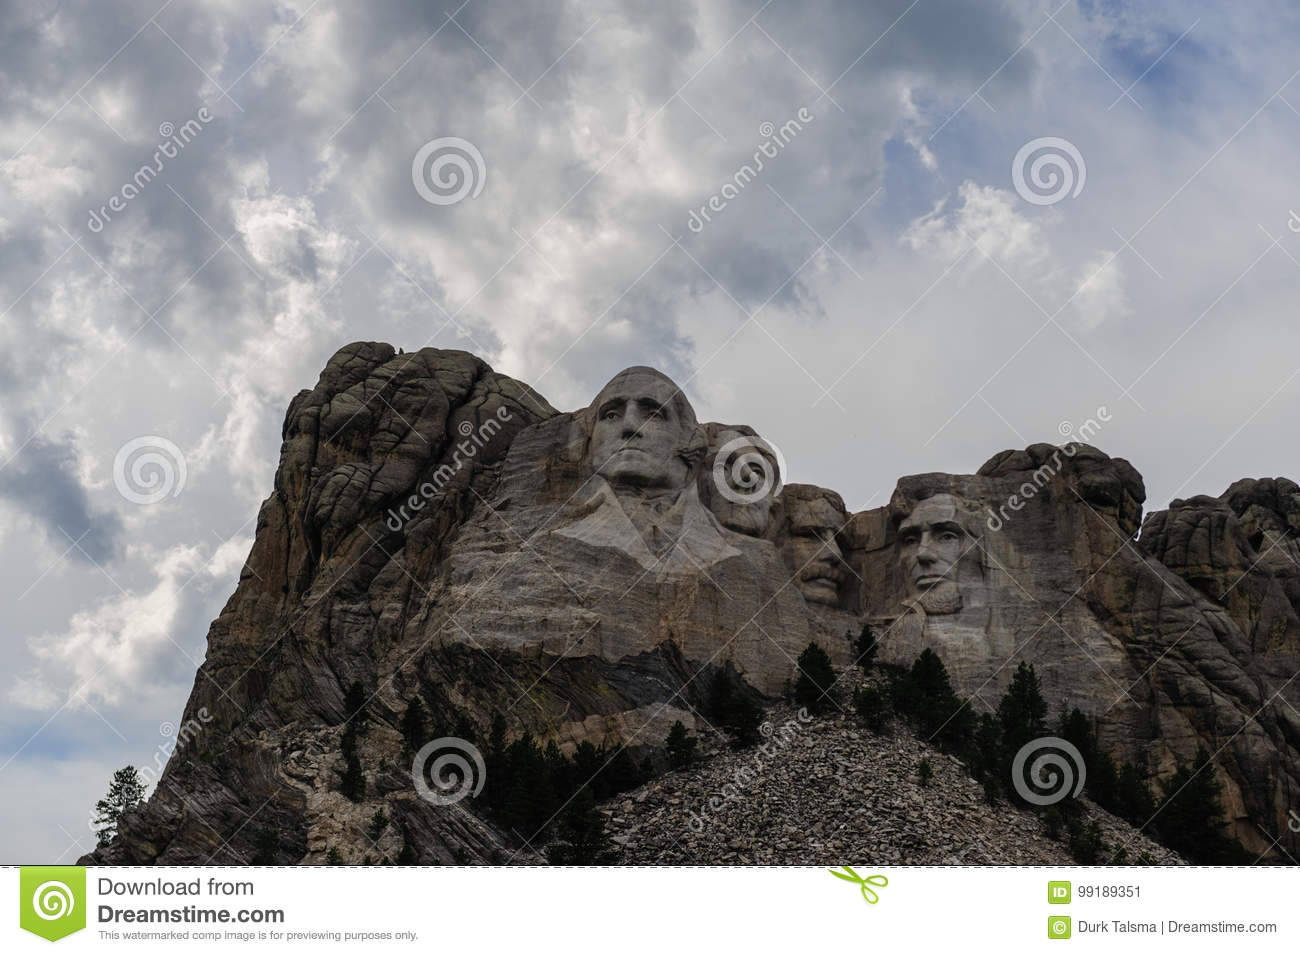 Clouds behind Mount Rushmore